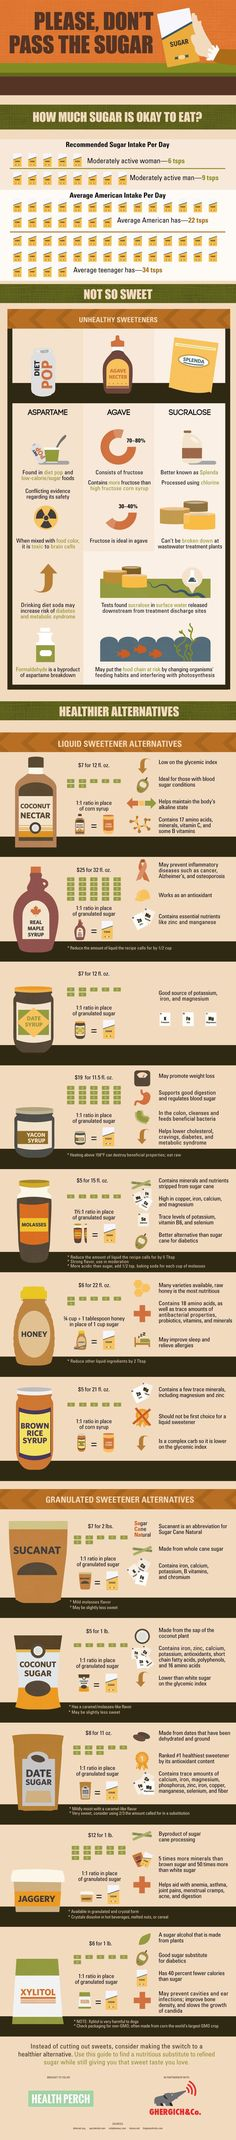 A Comprehensive Guide to Sugar Substitutes (Infographic)